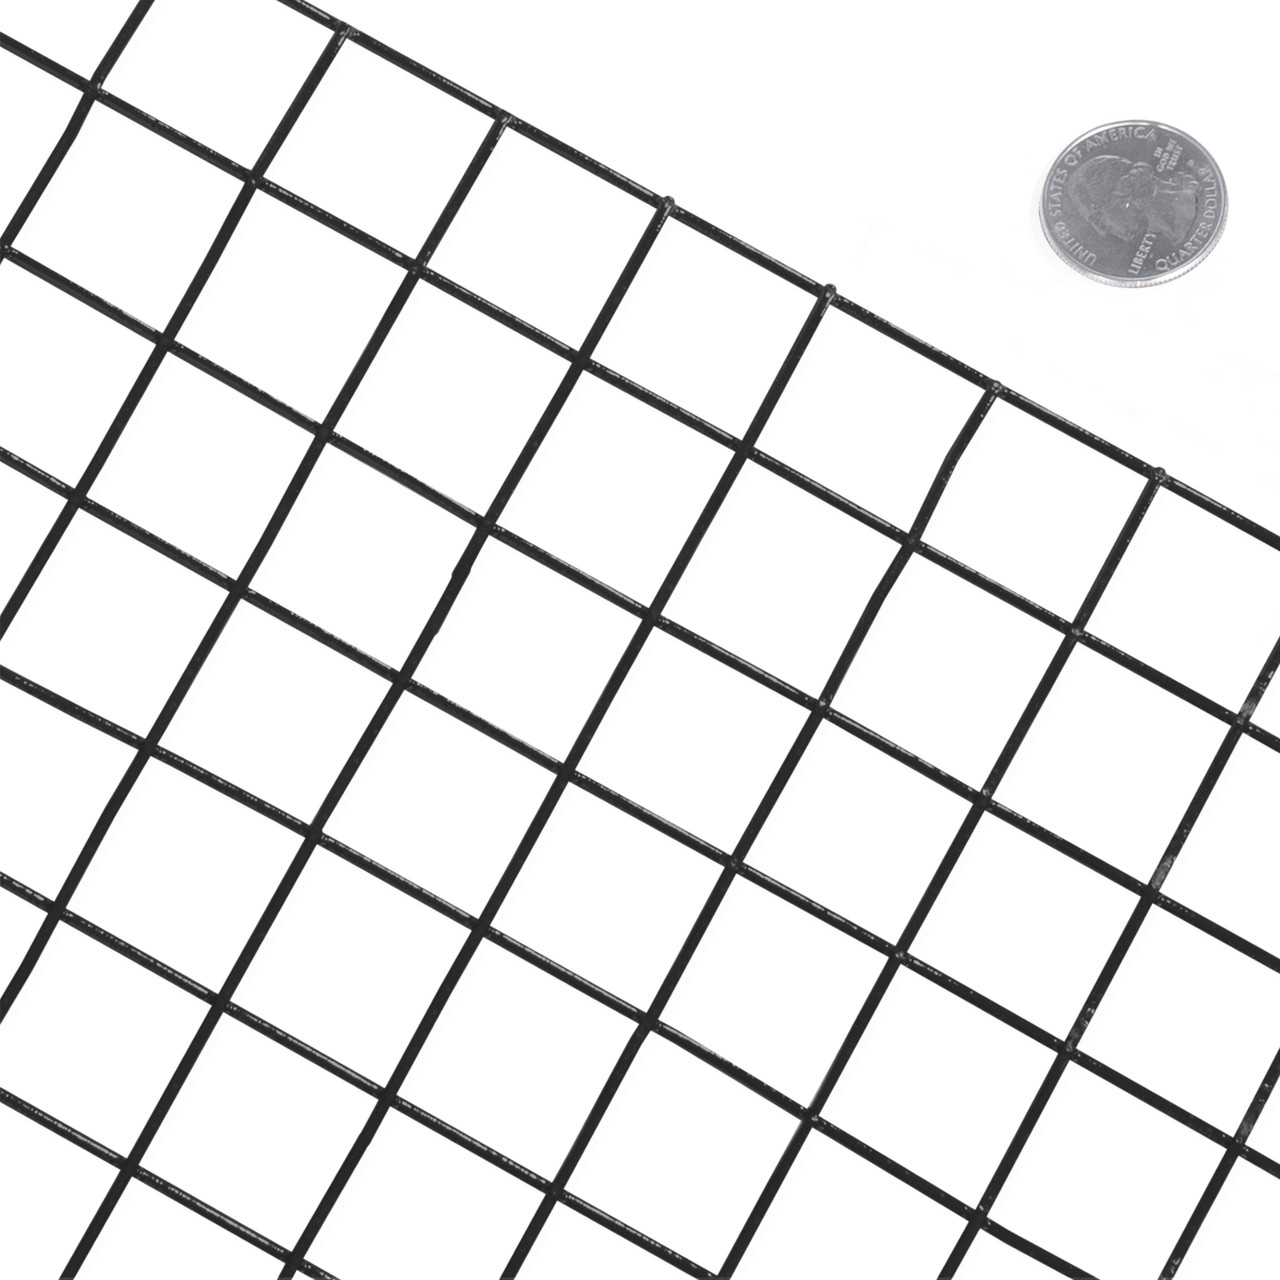 14 Gauge Black Vinyl Coated Welded Wire Mesh Size 1 inch by 1 inch ...